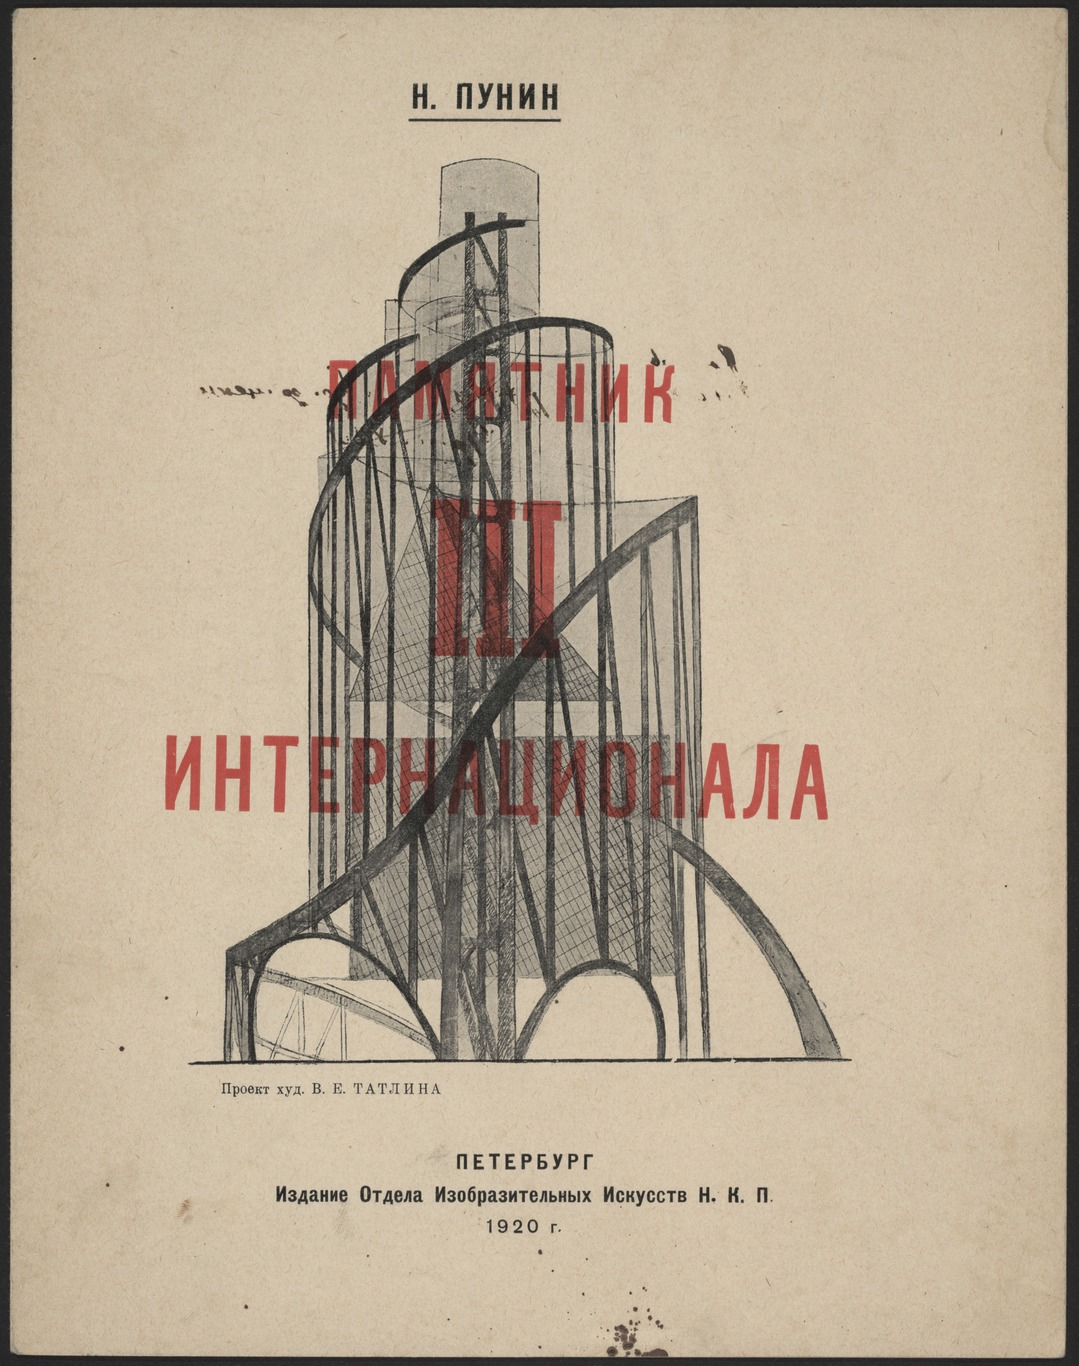 Vladimir Tatlin: Pamiatnik III Internatsionala (Monument to the Third International), cover with letterpress illustration on front, 28×21.9 cm, 1920 (New York, Museum of Modern Art); photo © The Museum of Modern Art, New York